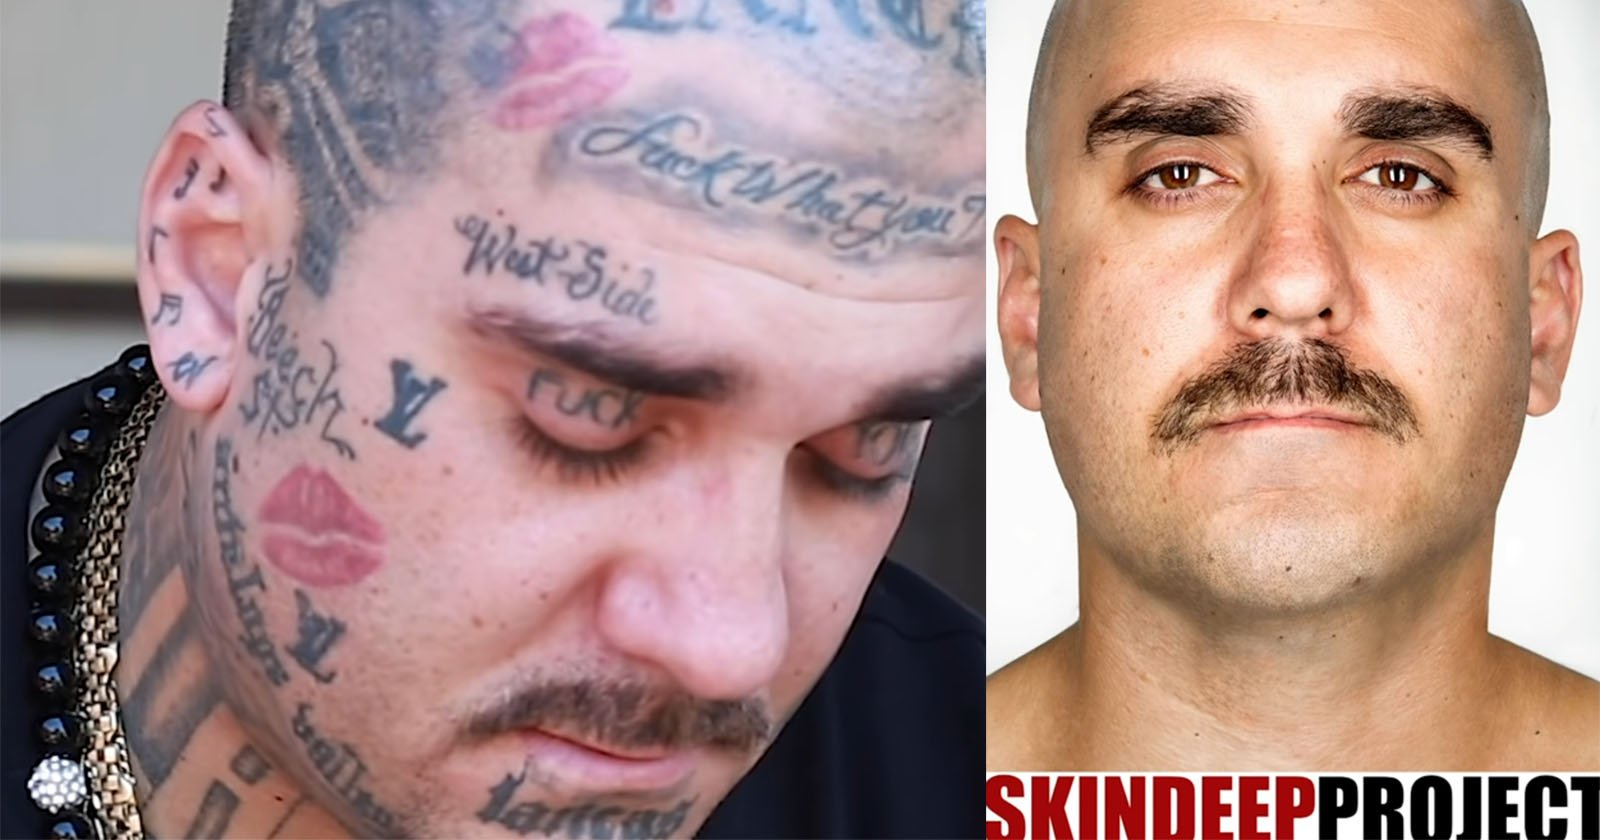 Gang Members React to Photos of Themselves with Tattoos Removed